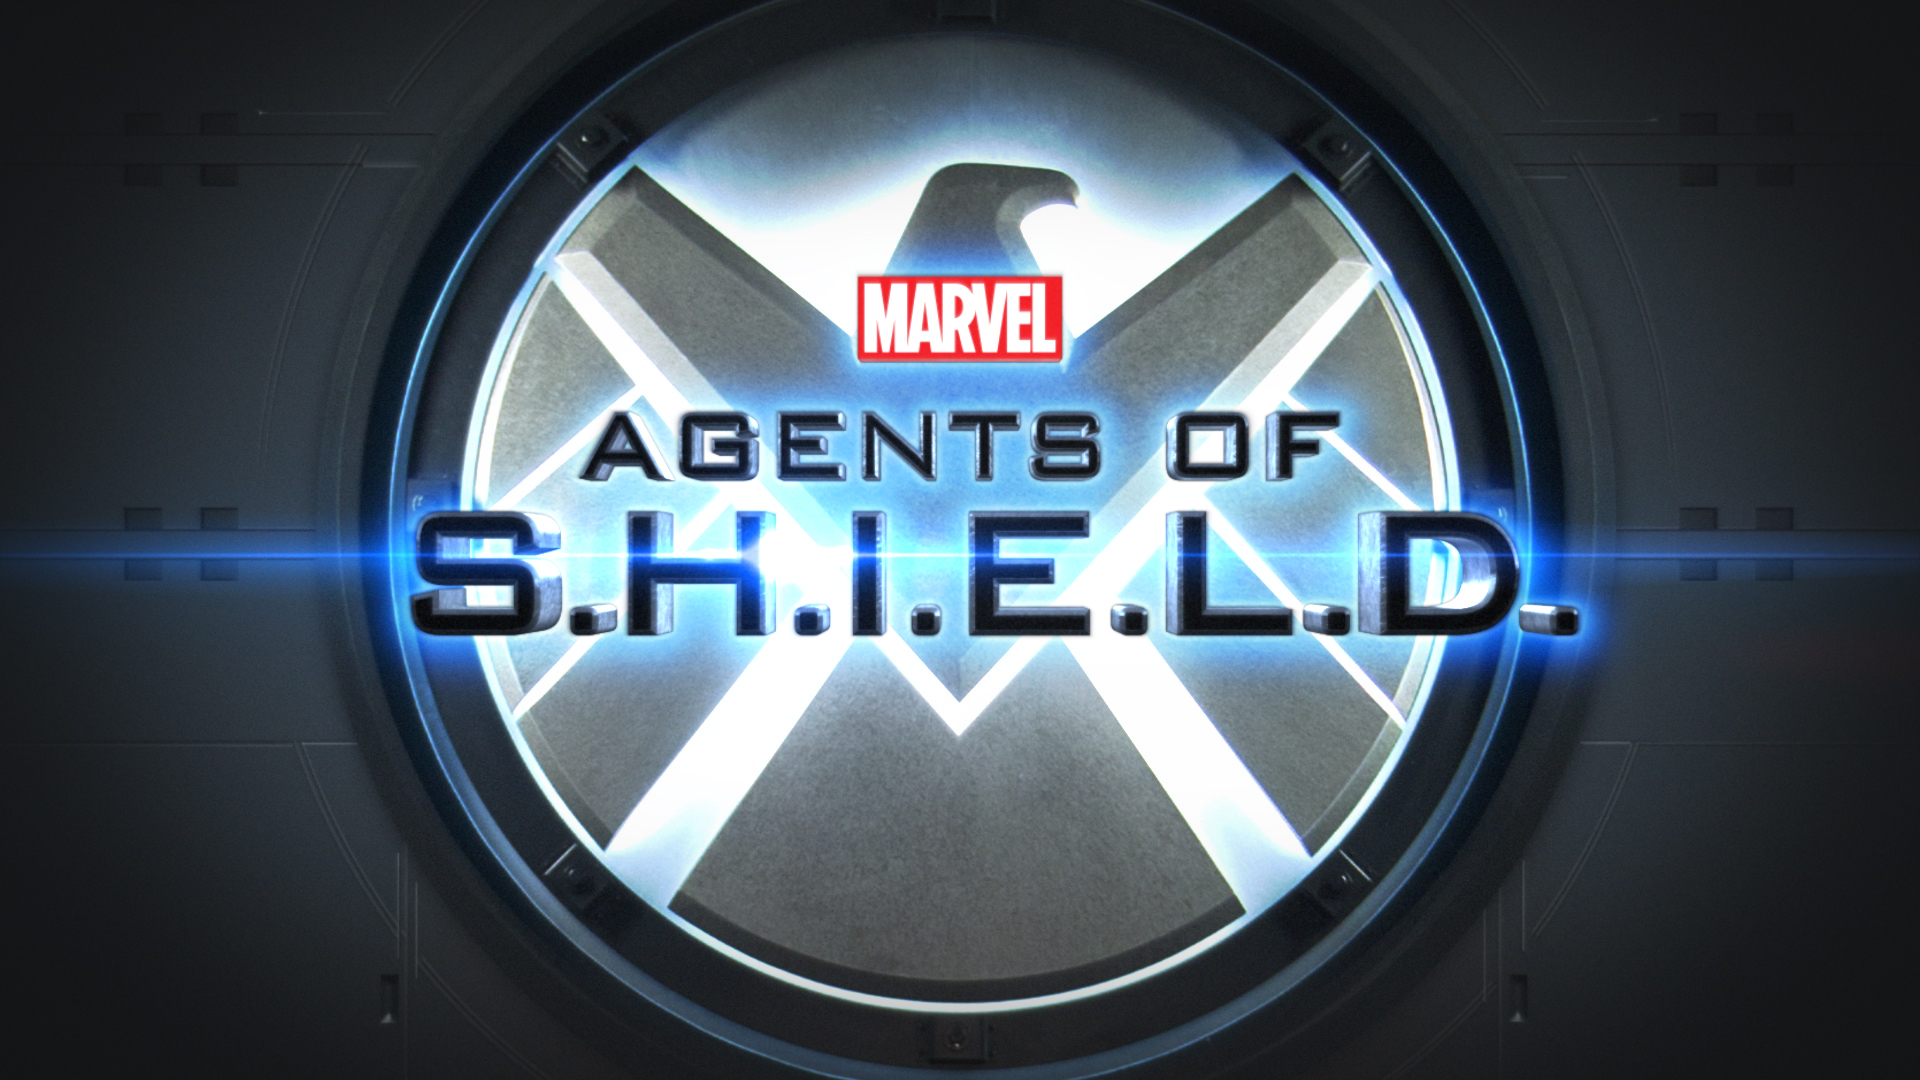 Agents Of Shield Images Agents Of Shield Hd Wallpaper And